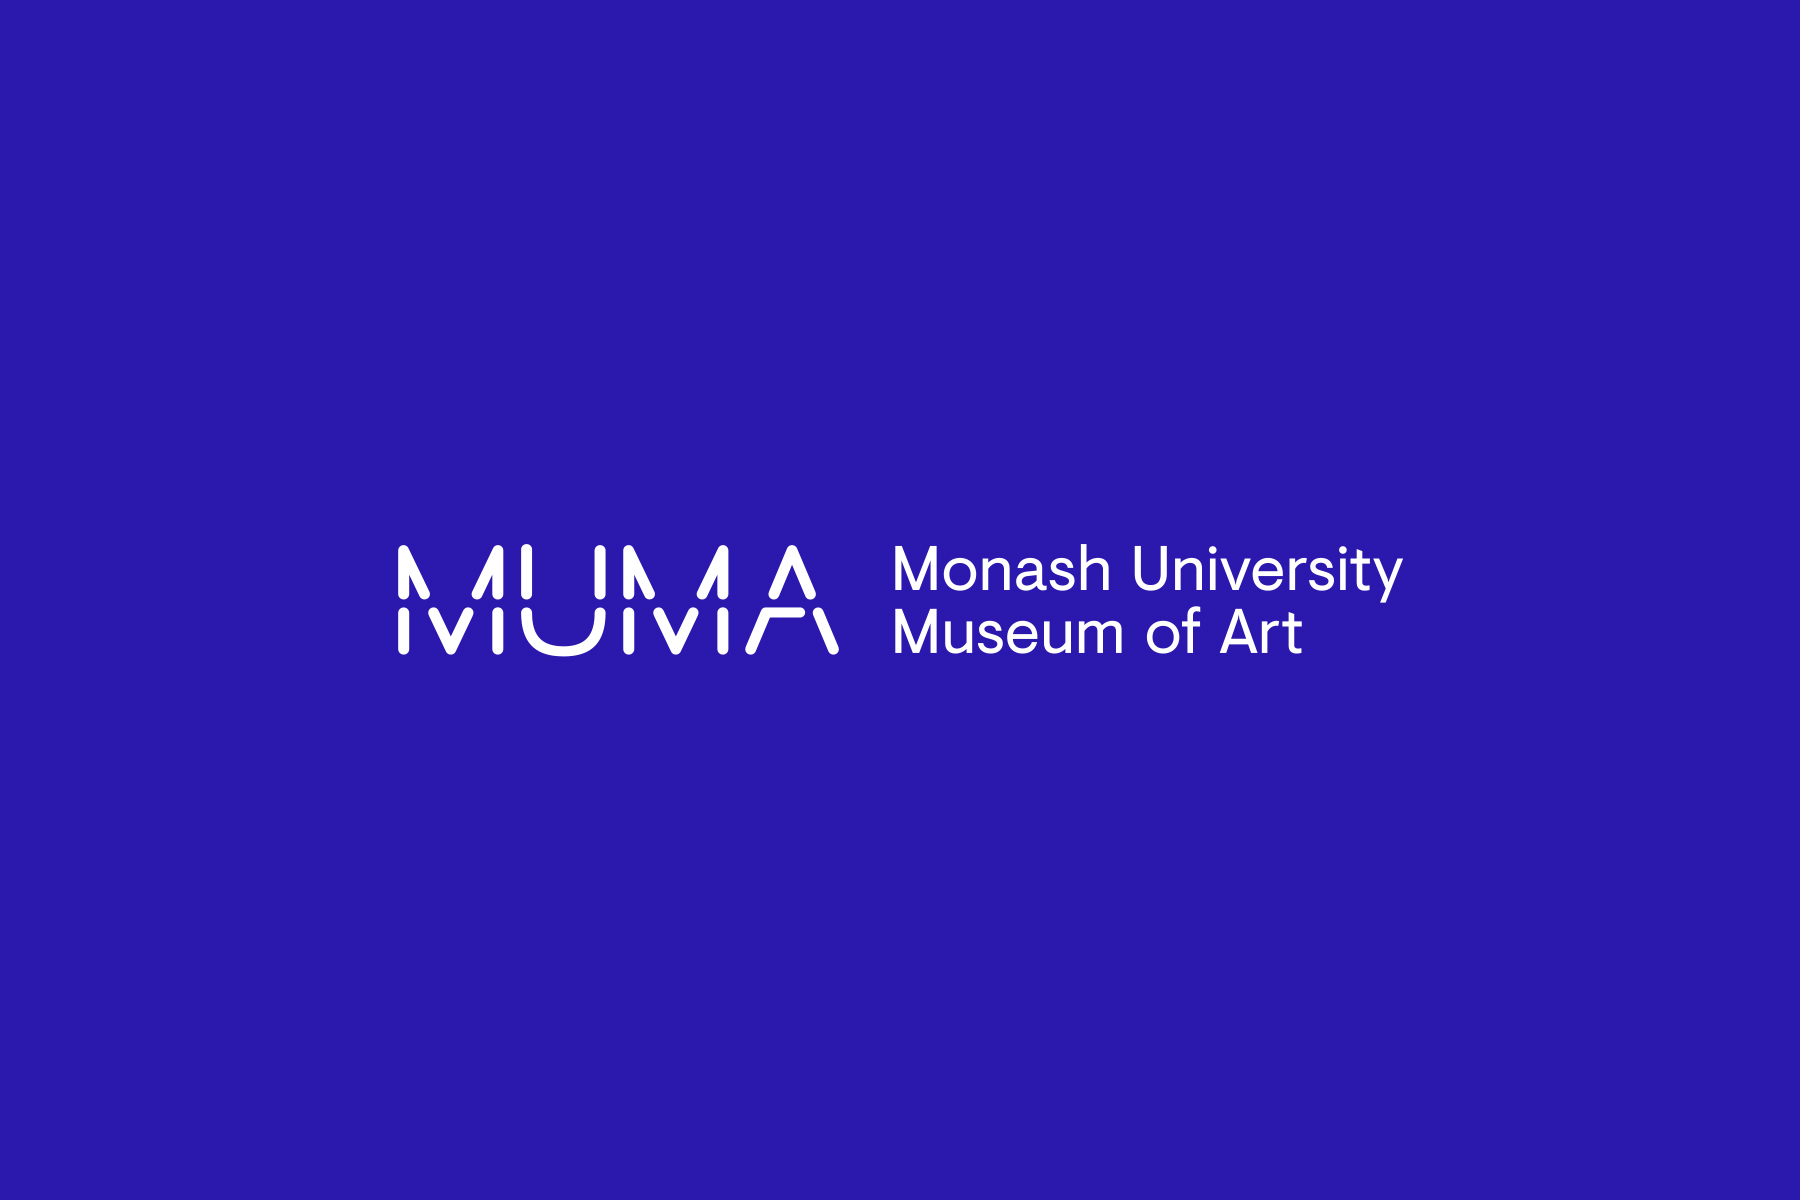 MUMA – new signage and wayfinding project underway